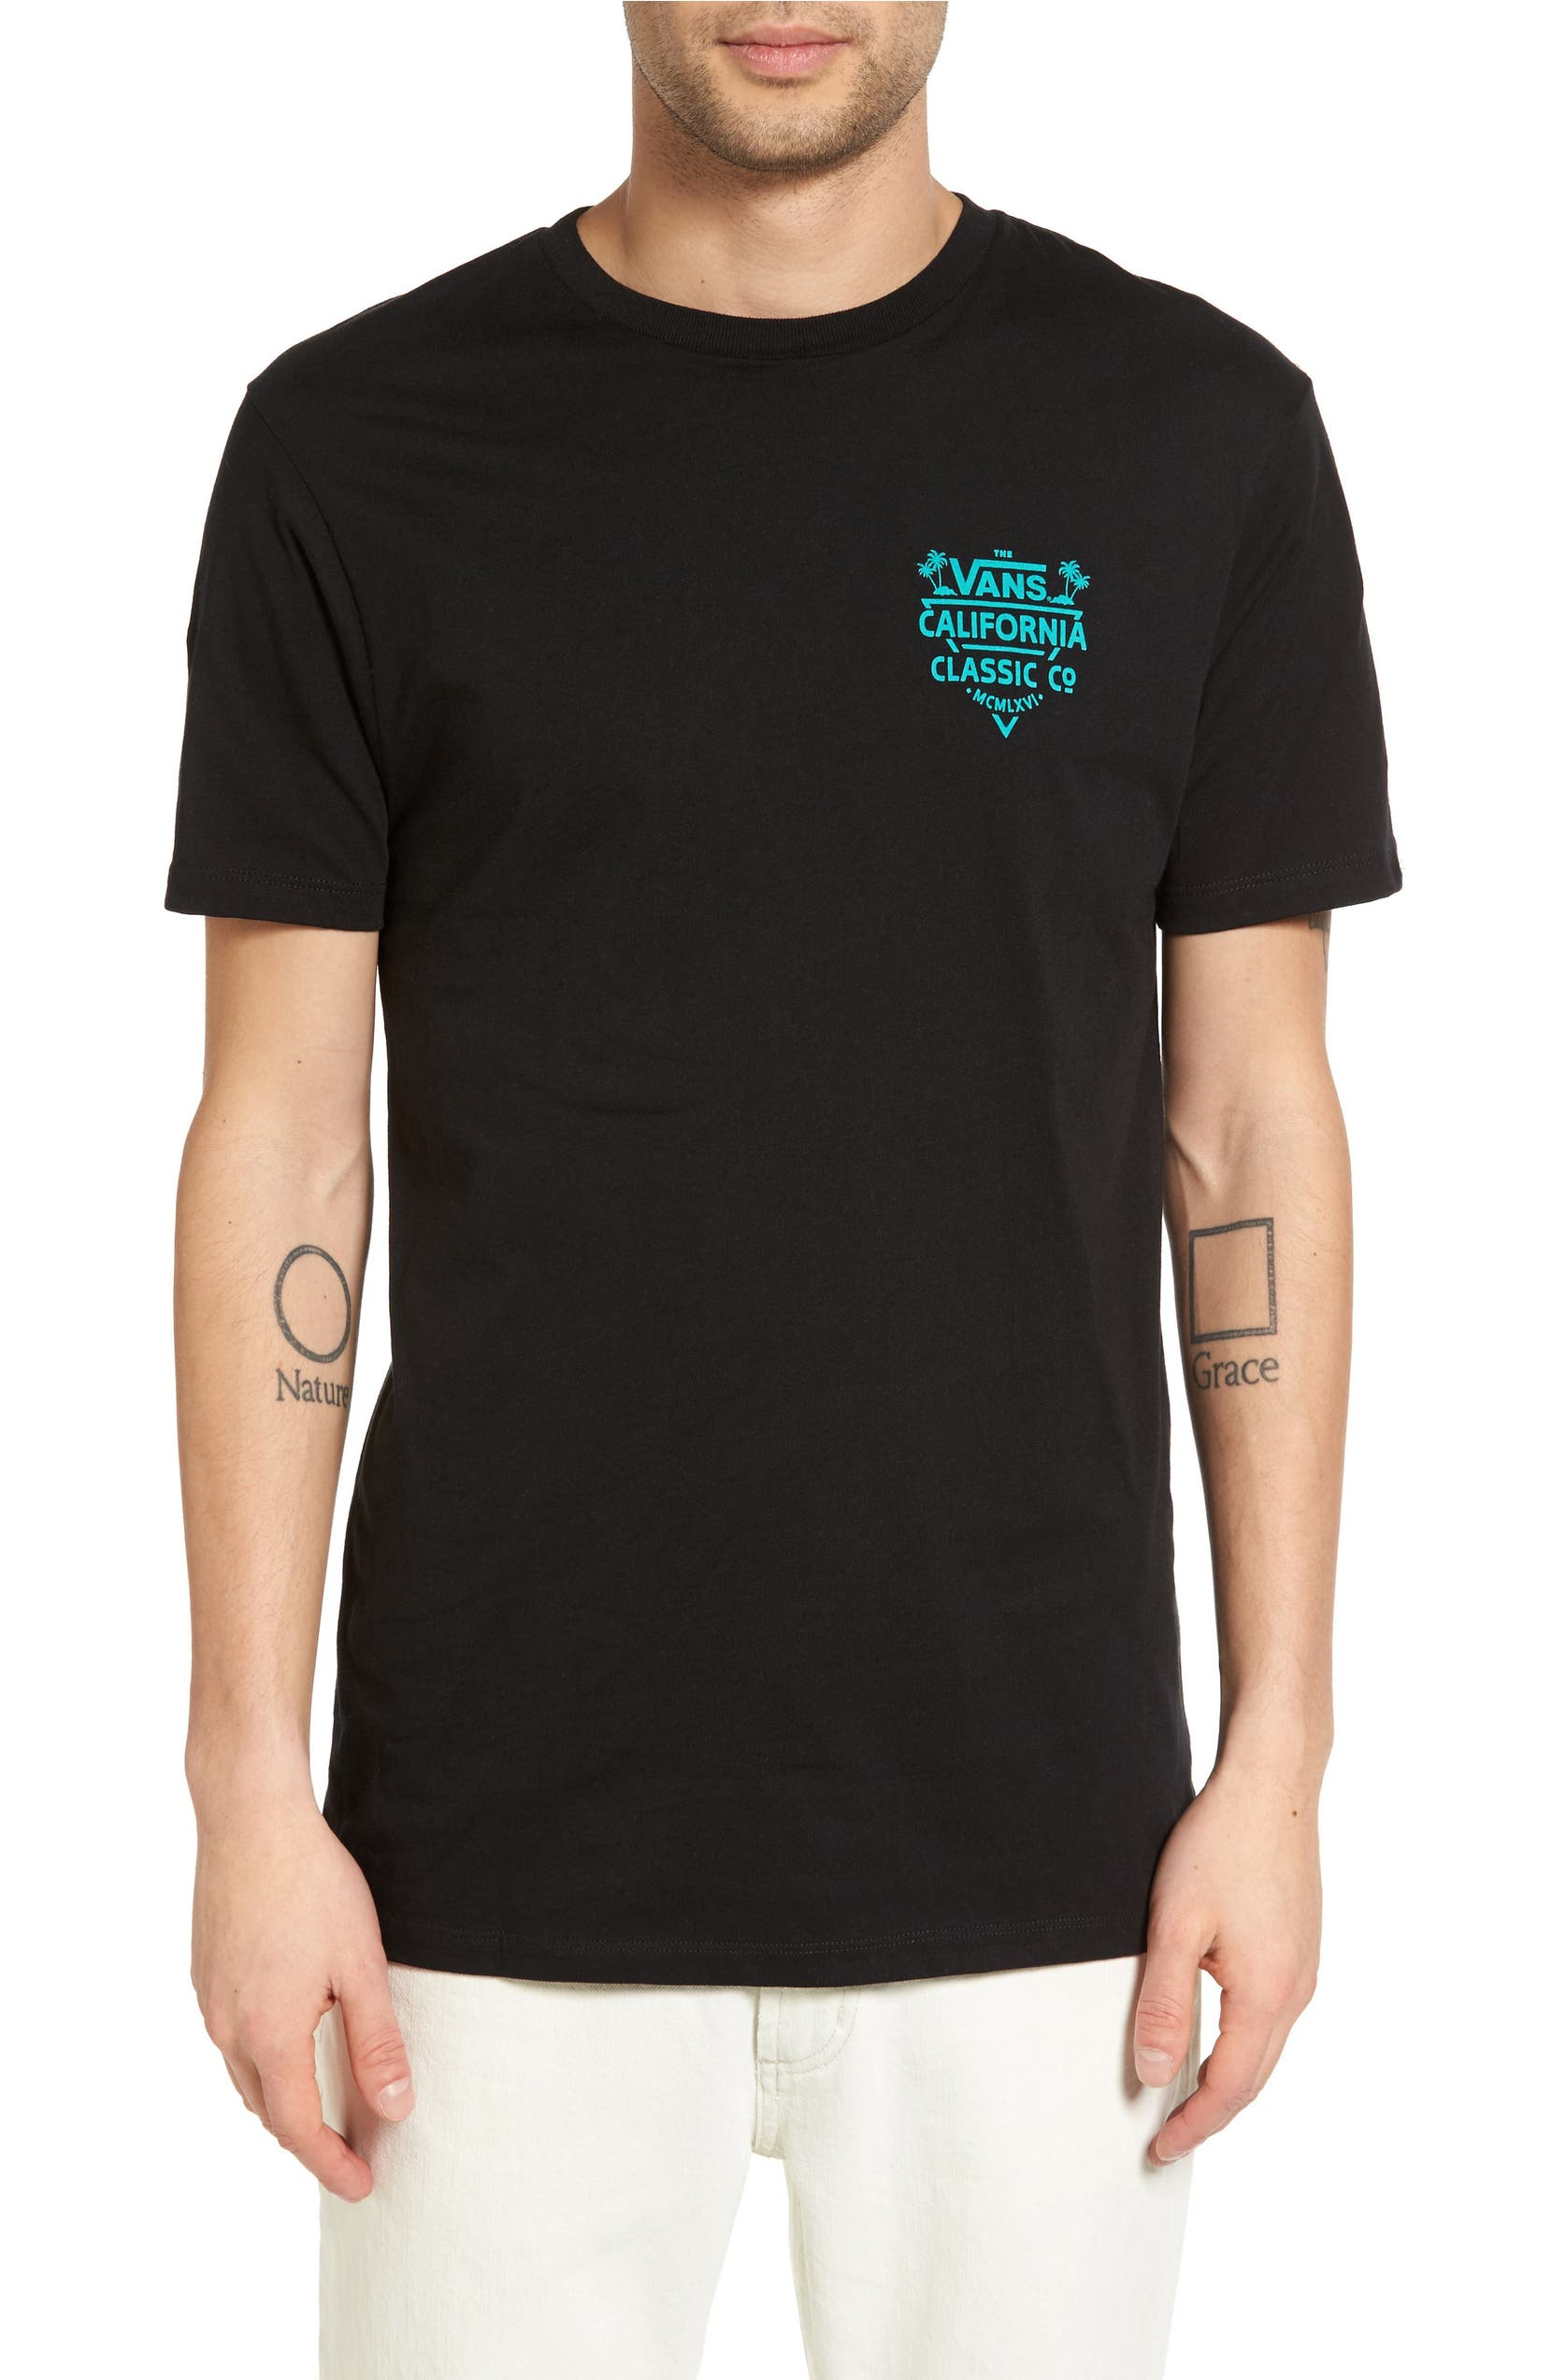 08aebfe210 Vans Cali Classic Co Graphic T-Shirt   Nordstrom